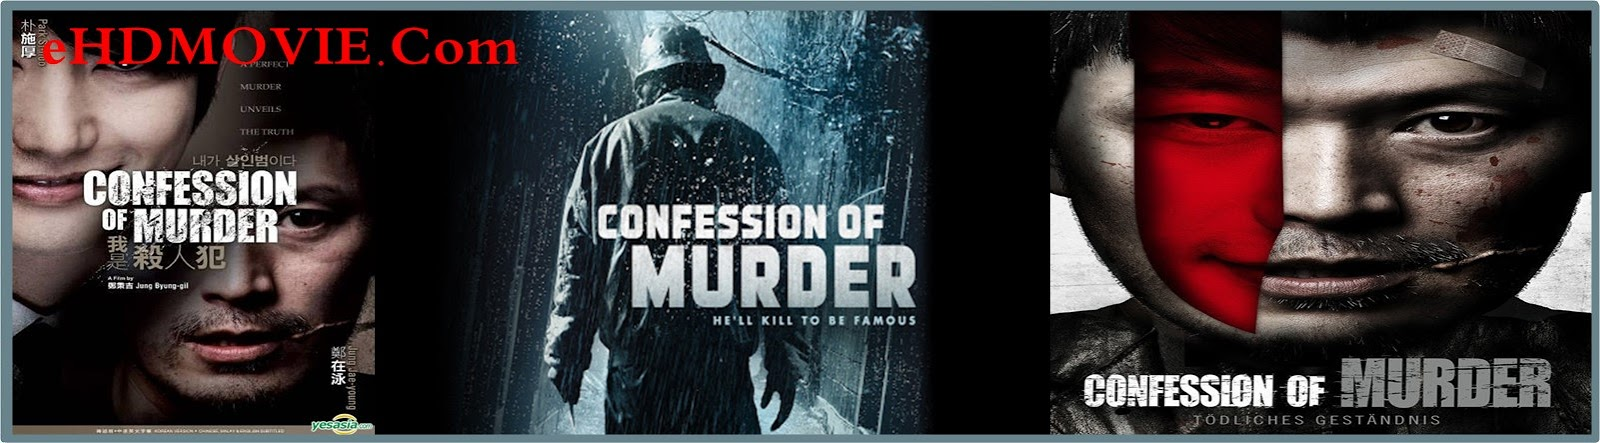 Confession of Murder 2012 Full Movie Korean 720p - 480p ORG BRRip 400MB - 850MB ESubs Free Download